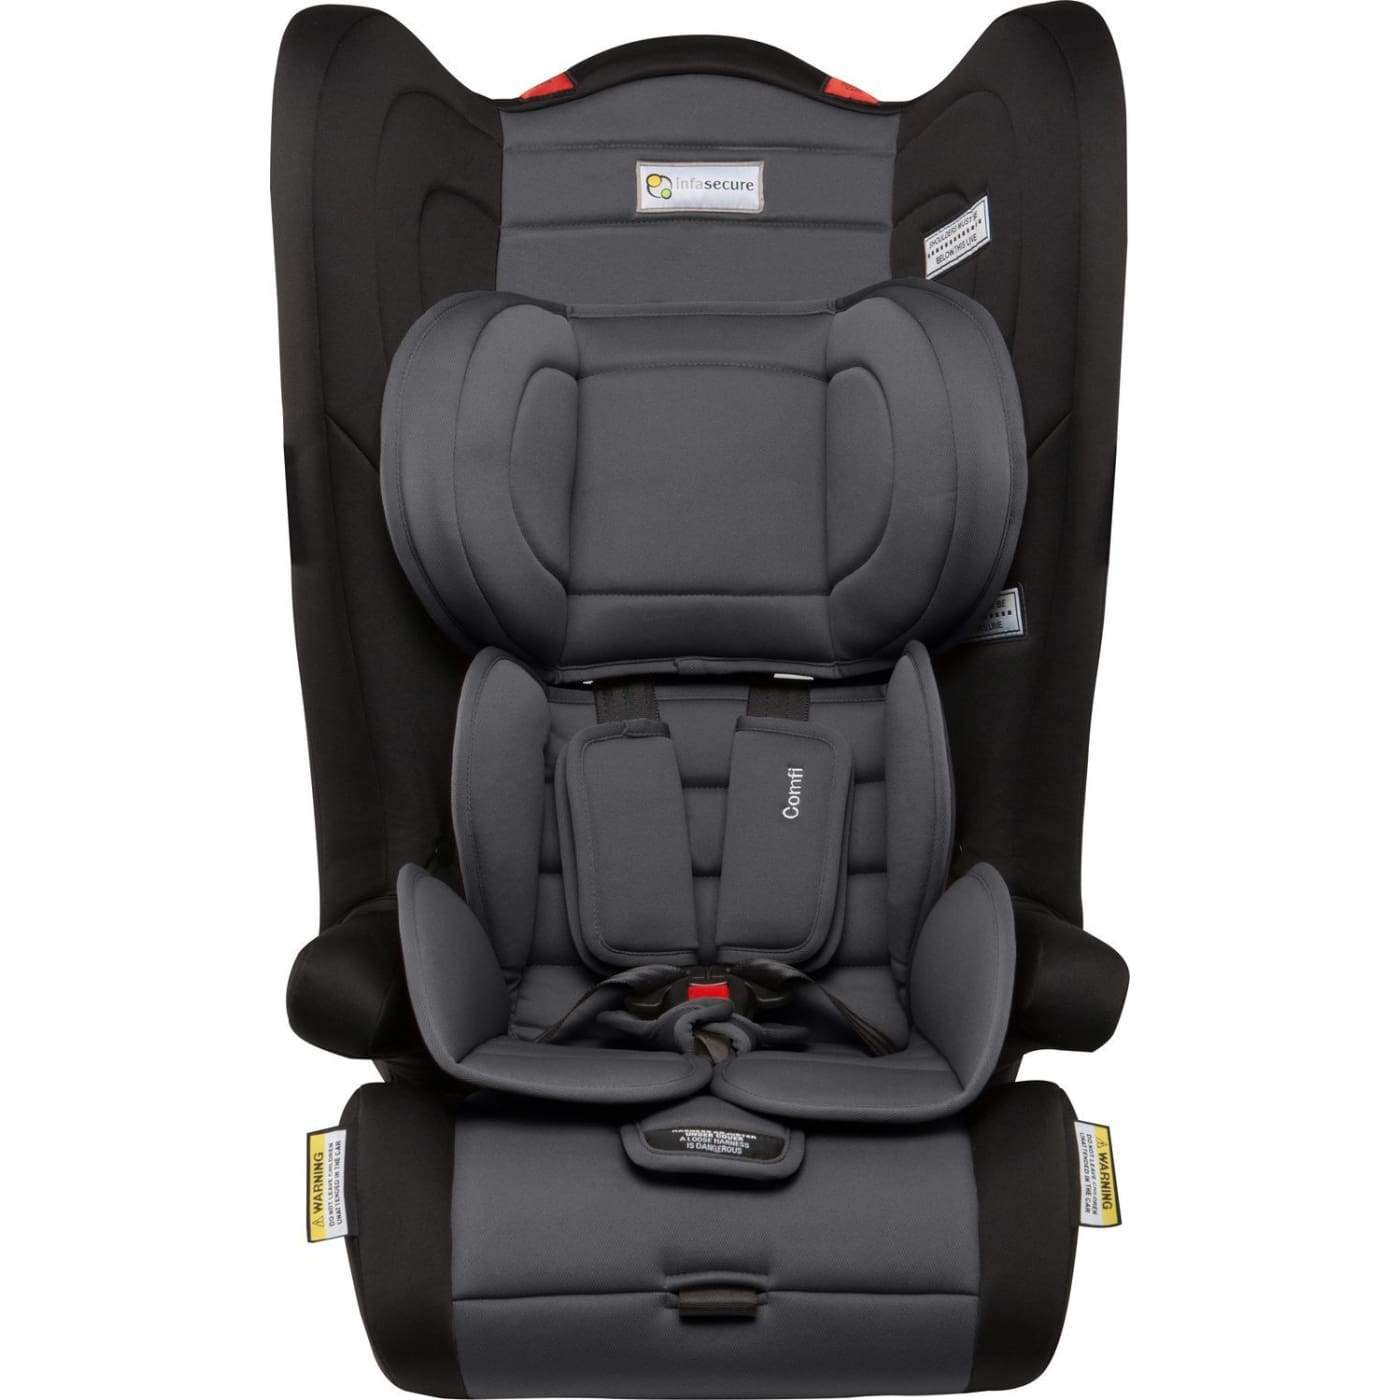 InfaSecure Astra Comfi Convertible Booster 6M-8YR - Grey - CAR SEATS - CONV BOOSTERS (6M-8YR)